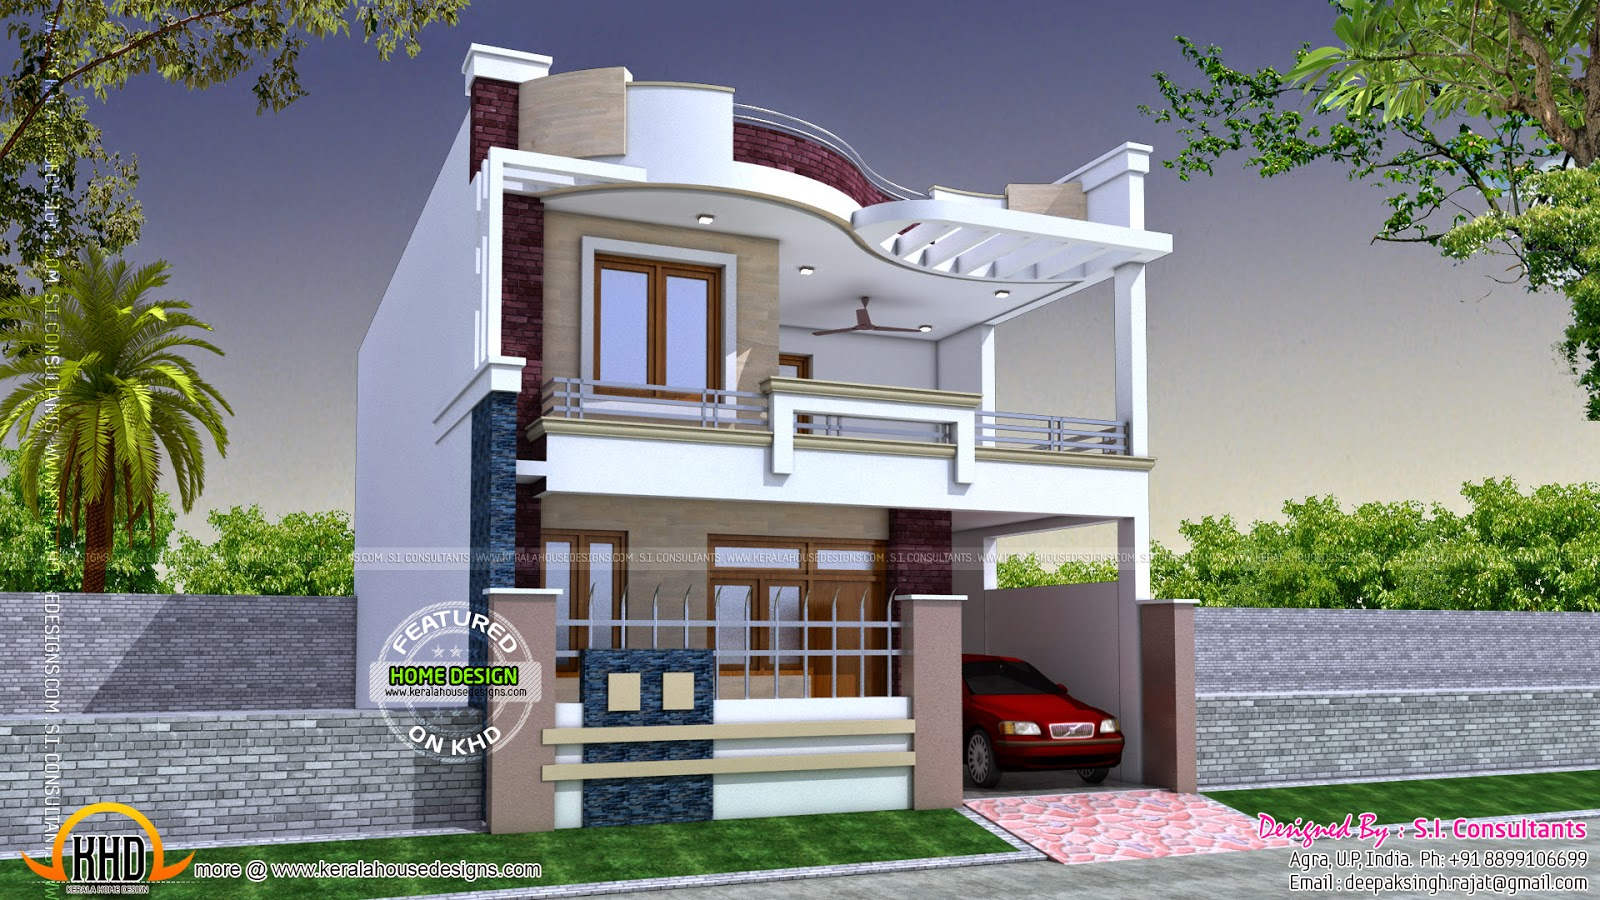 Modern indian home design kerala home design and floor plans for Housing plan in india